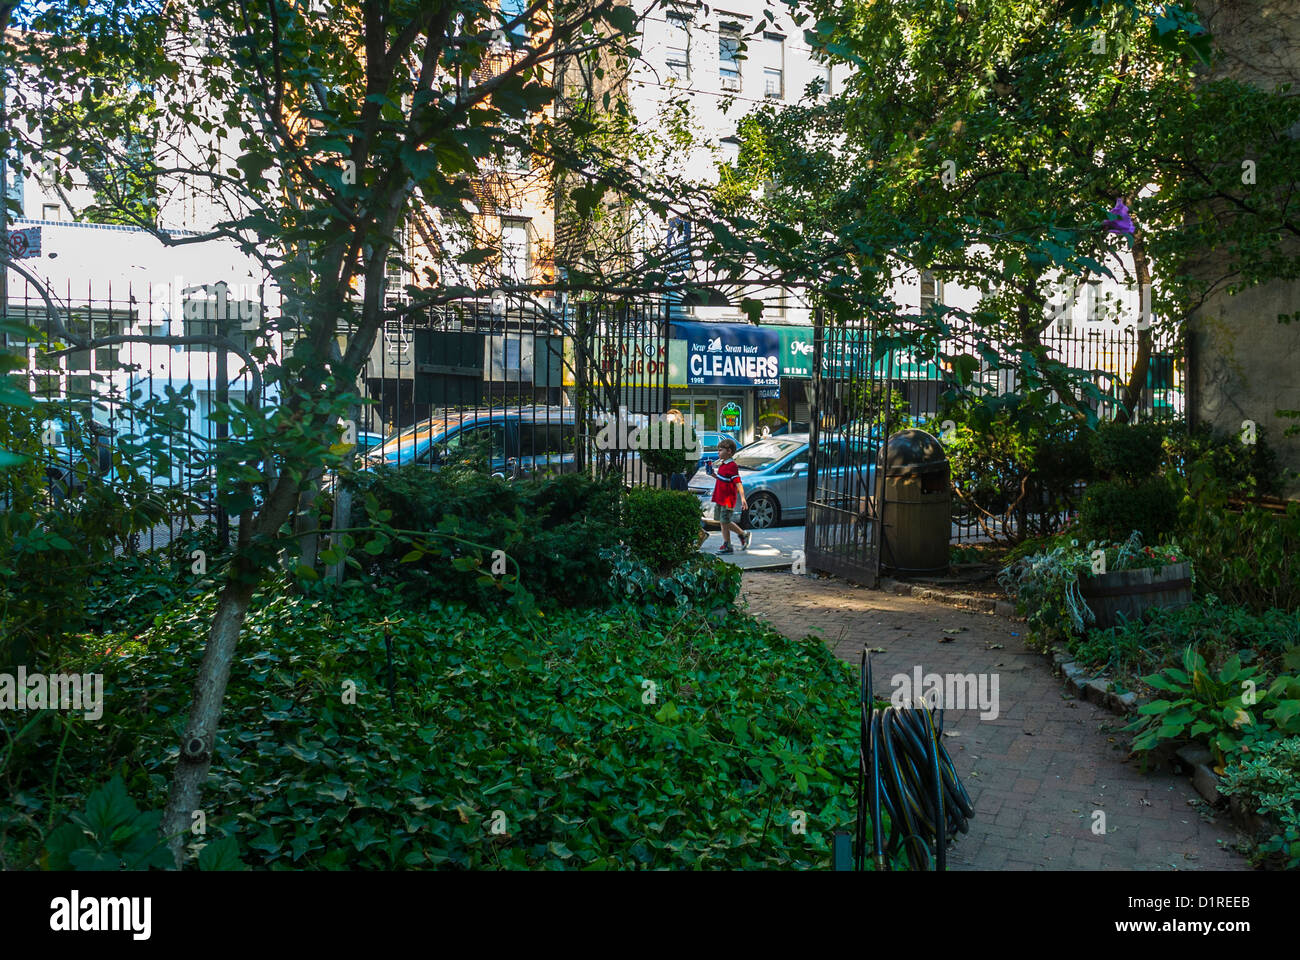 New York East Village Miracle Garden Community Gardens Scenes Stock Photo Royalty Free